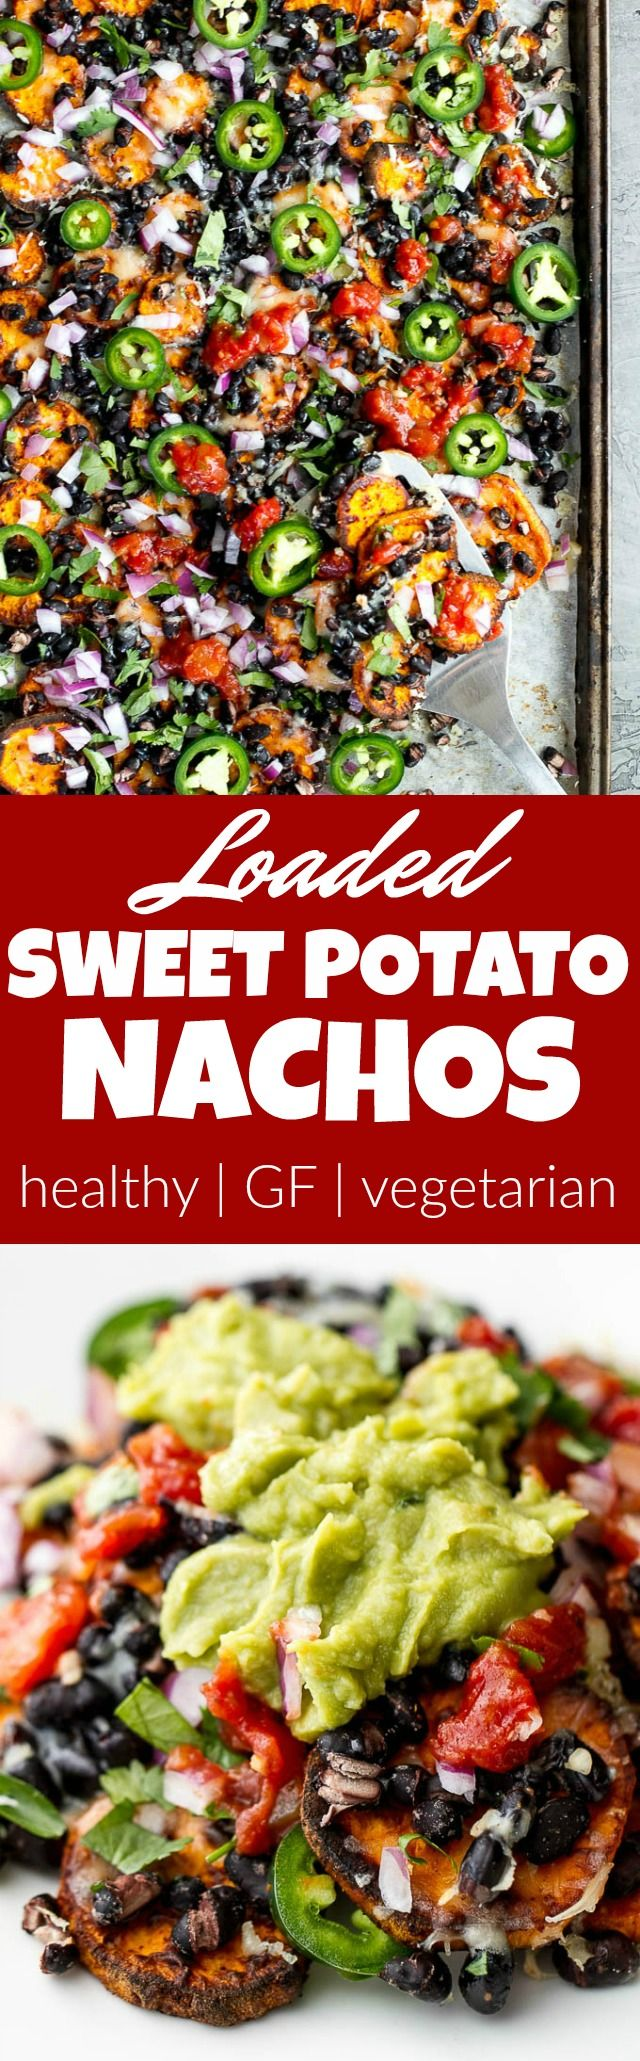 Loaded Sweet Potato Nachos - seasoned baked rounds topped with black beans, jalapeños, onions, cheese, salsa, and guacamole for an easy vegetarian, Mexican-inspired meal that's way healthier than traditional nachos | runningwithspoons.com